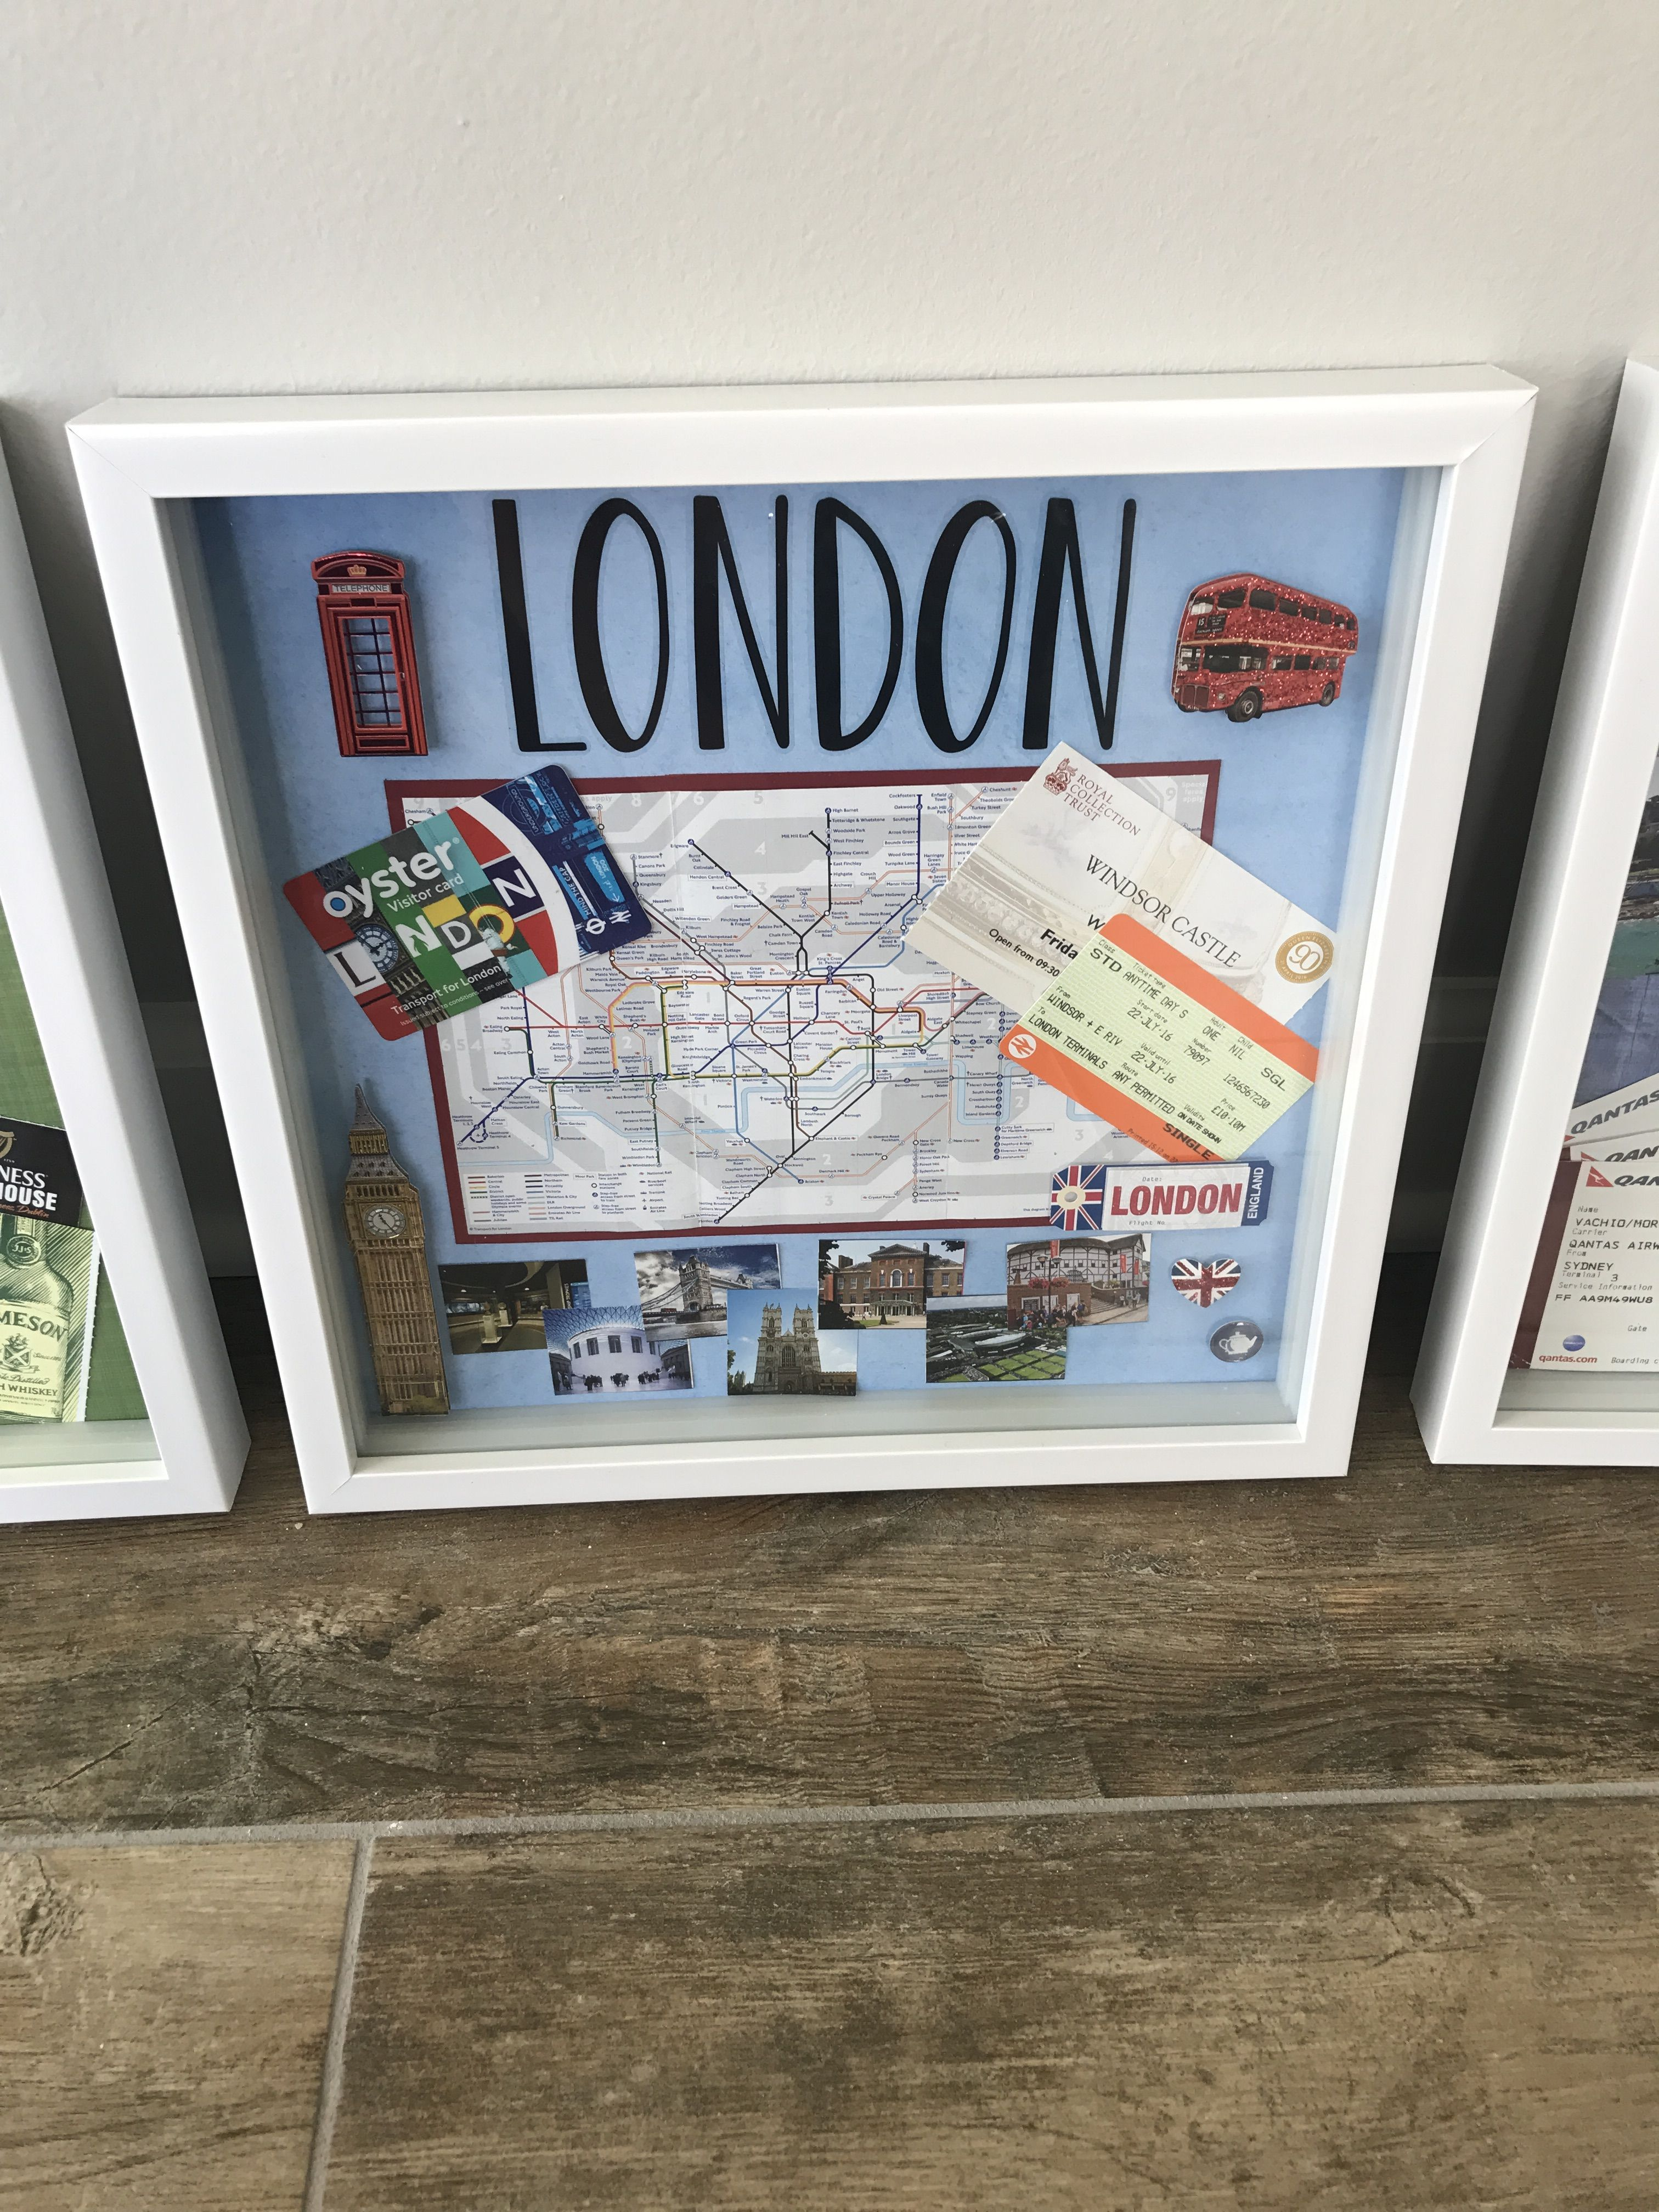 London Shadow Box Travel Shadow Boxes Travel Keepsakes Diy Travel Decor